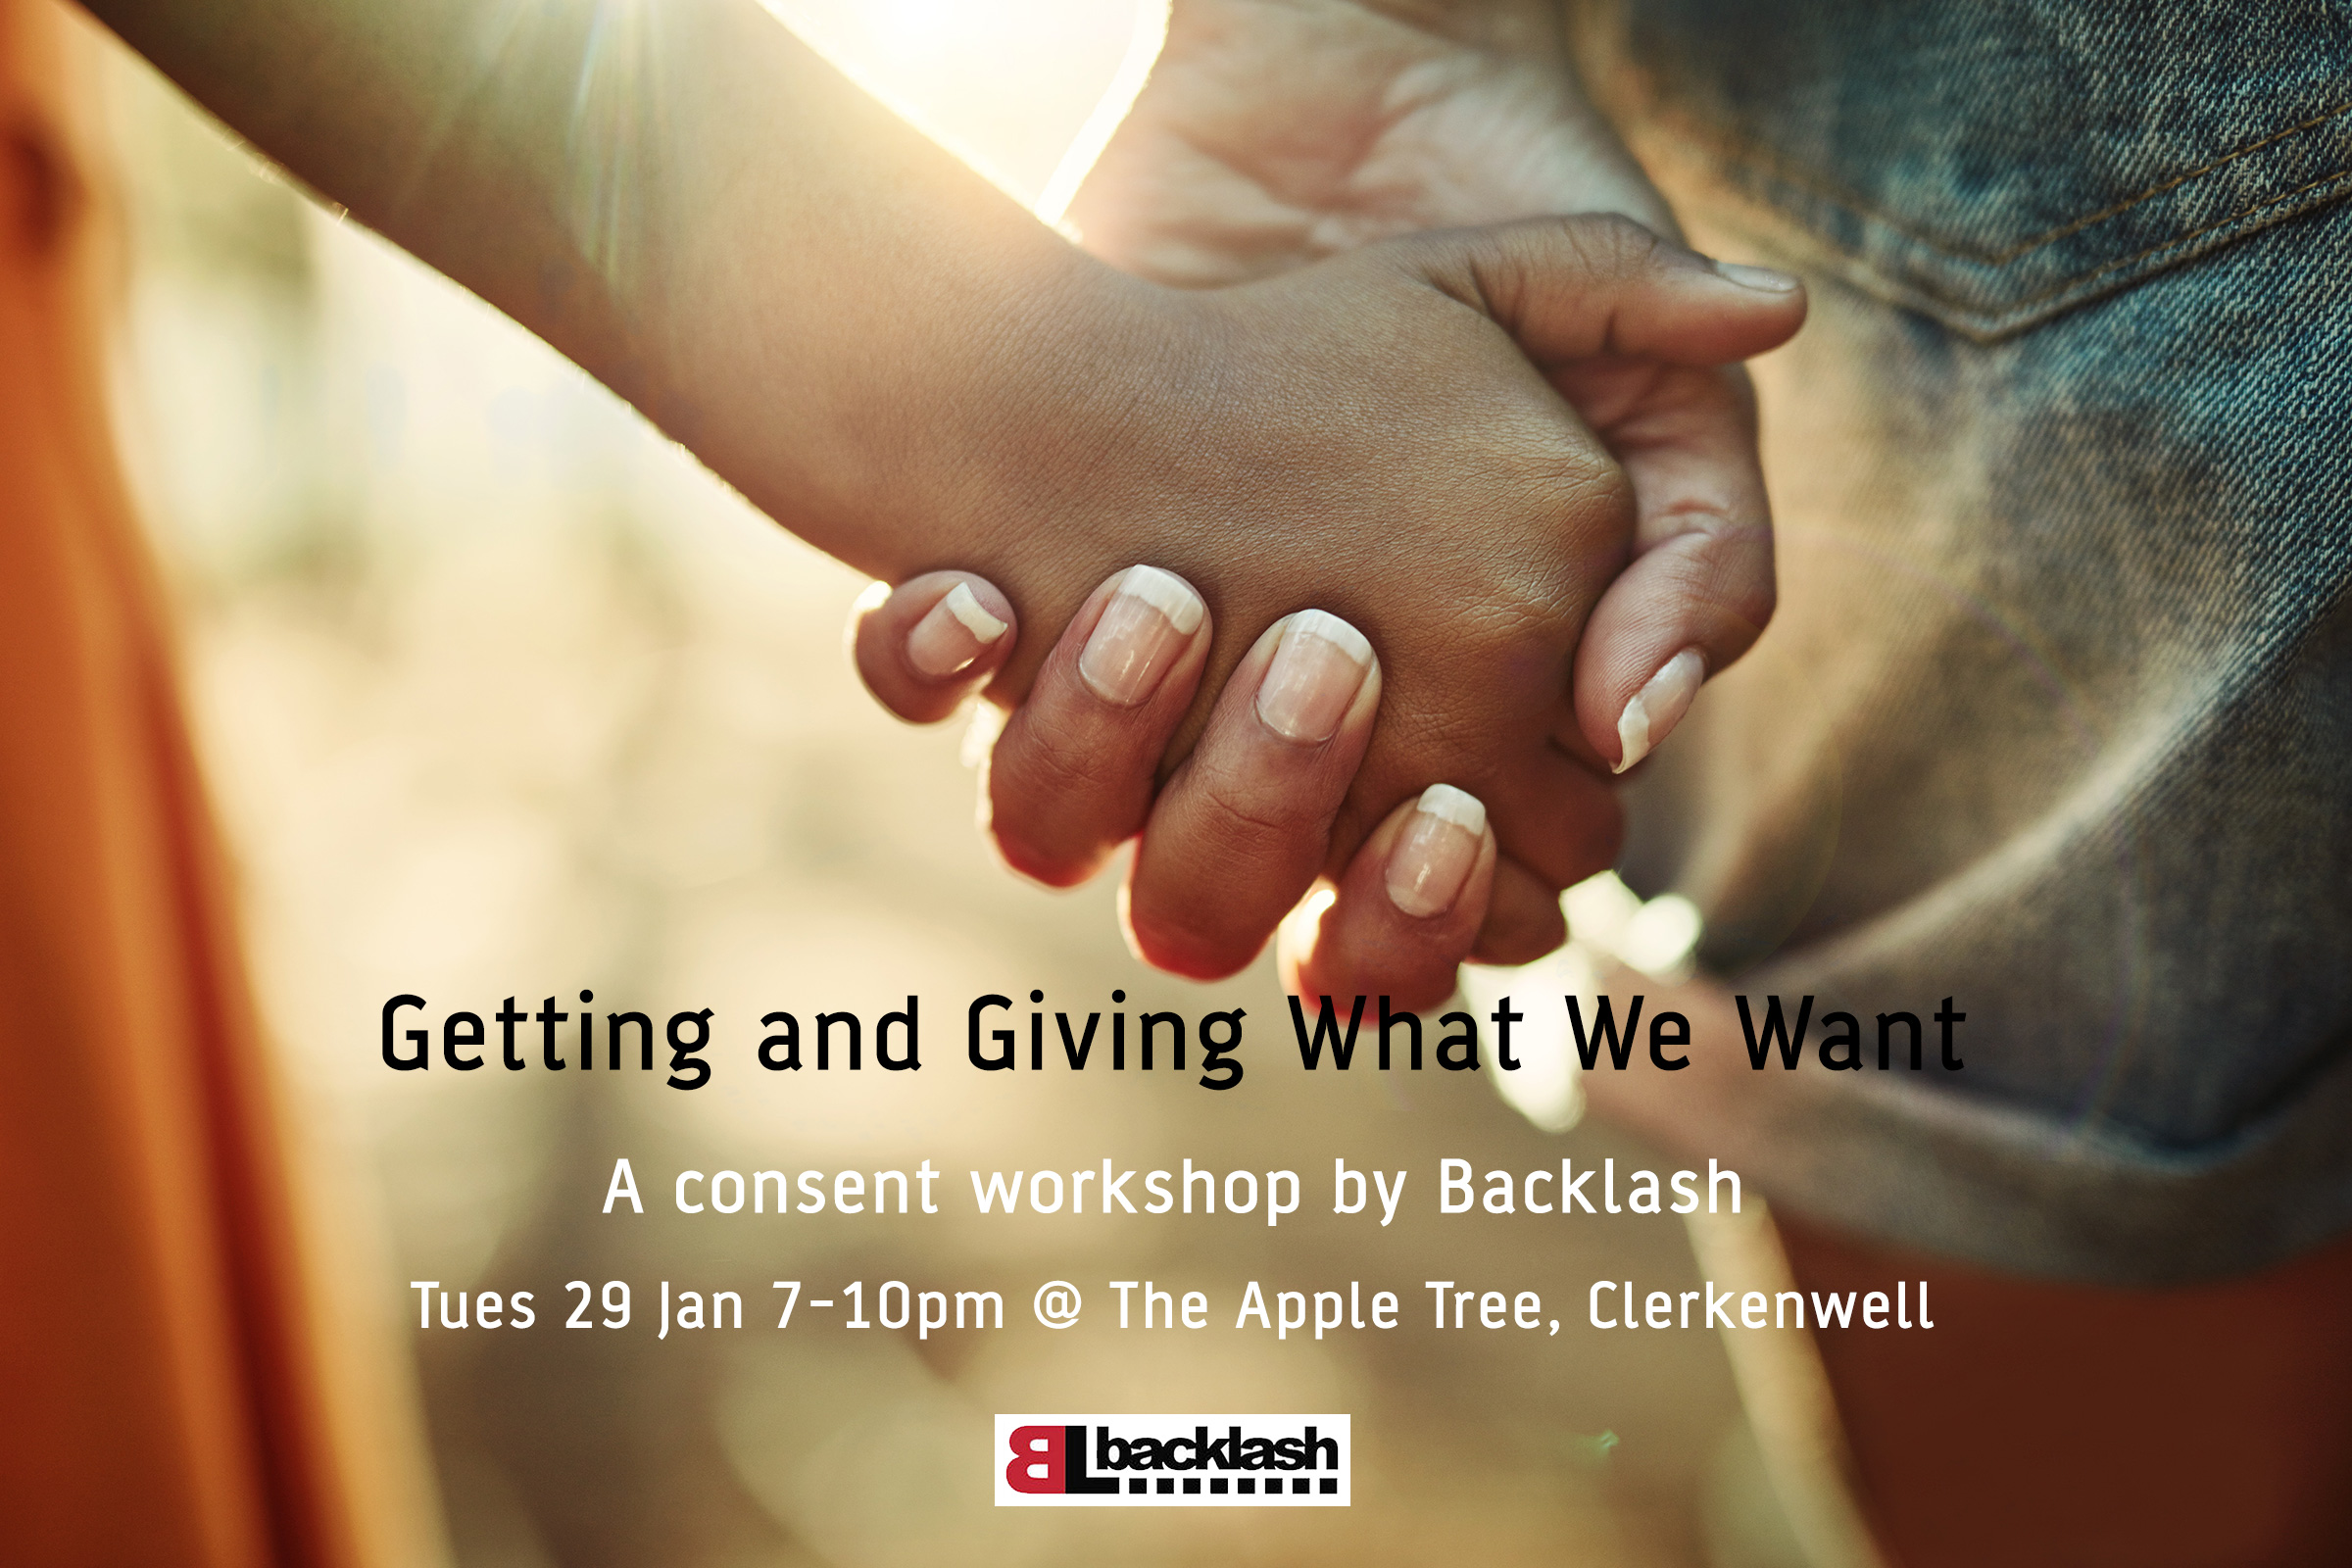 Getting and Giving What We Want, consent workshop at the Apple Tree in London, 7pm 29th Jan